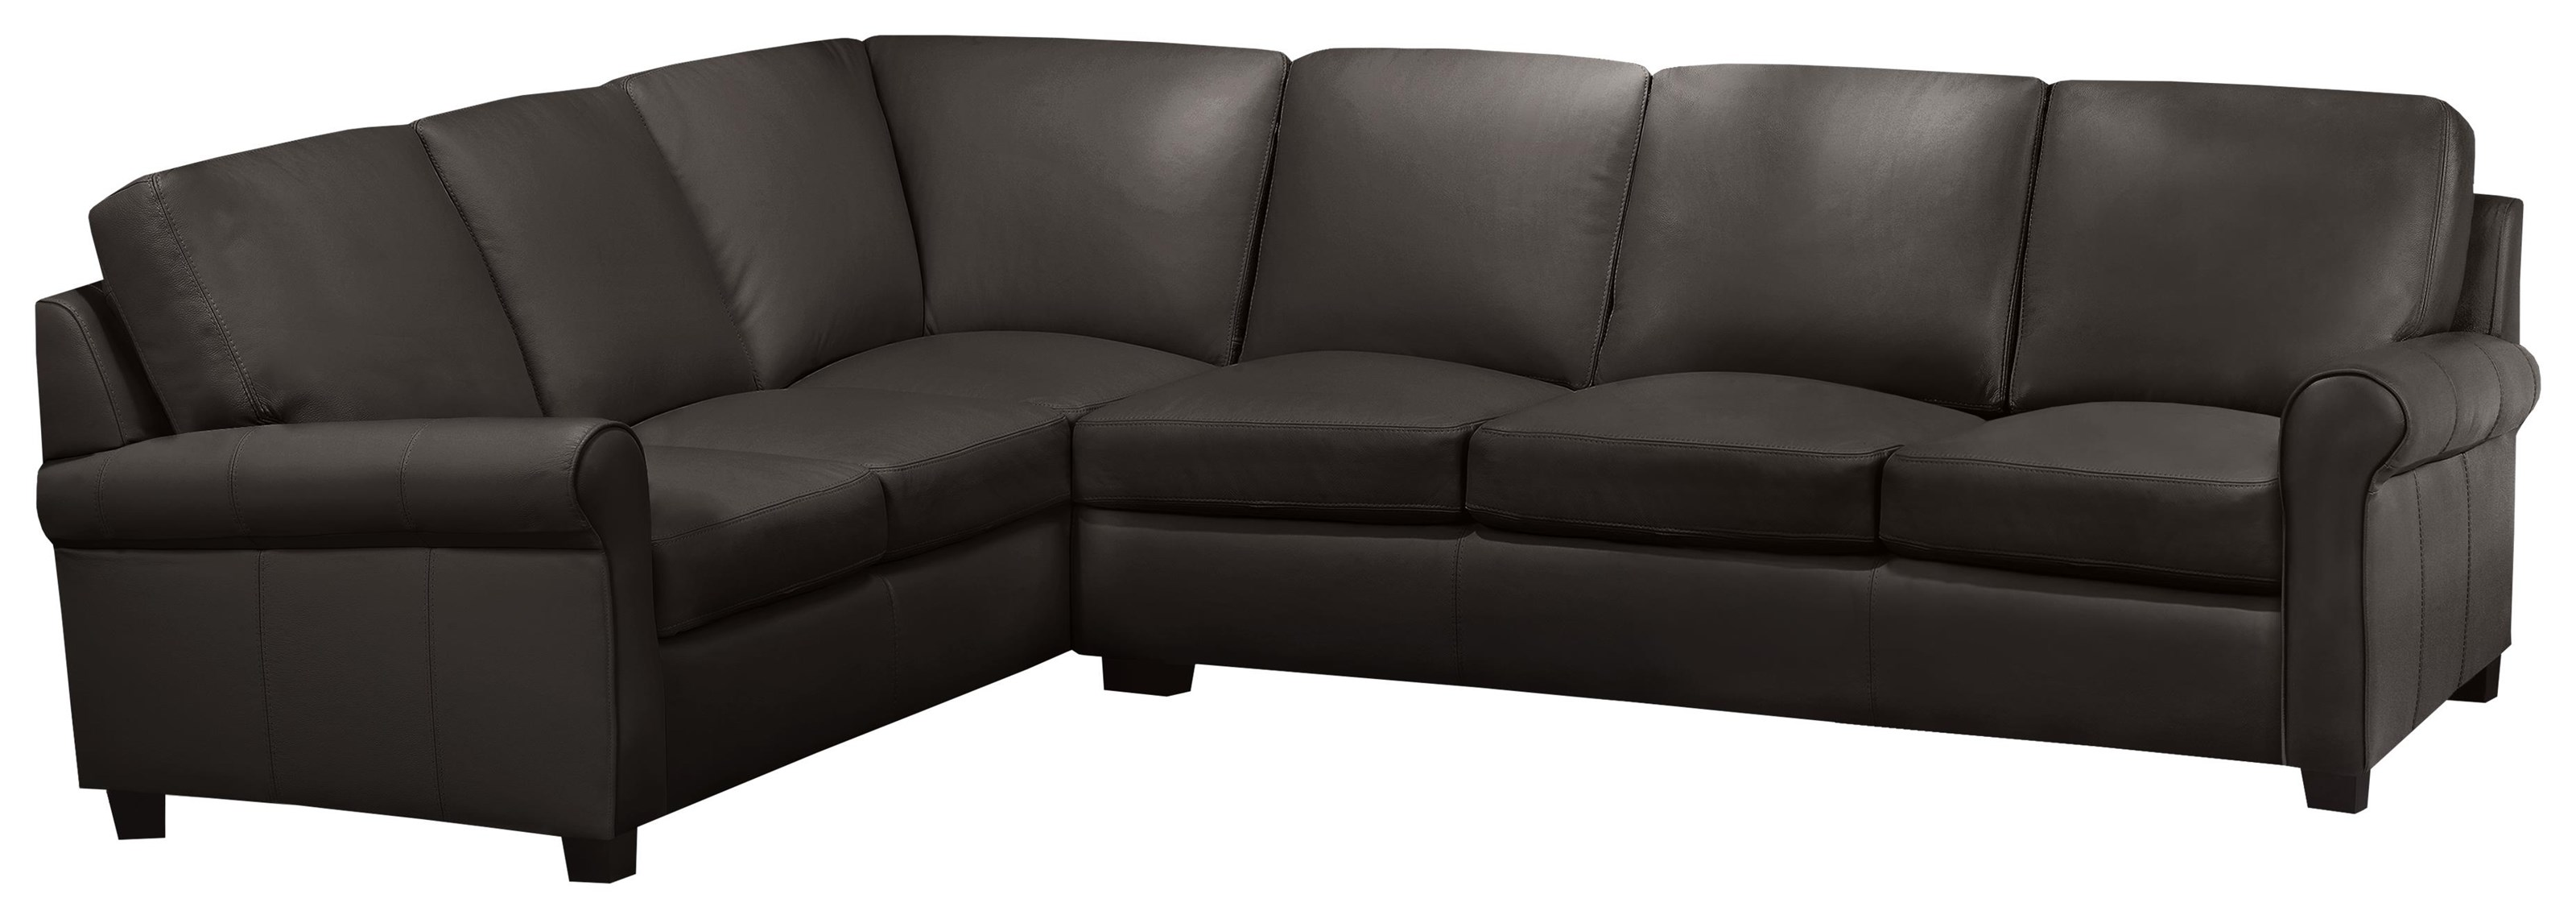 Lima 2 Pc Lthr Sectl/mocha Al by Leather Living at Stoney Creek Furniture